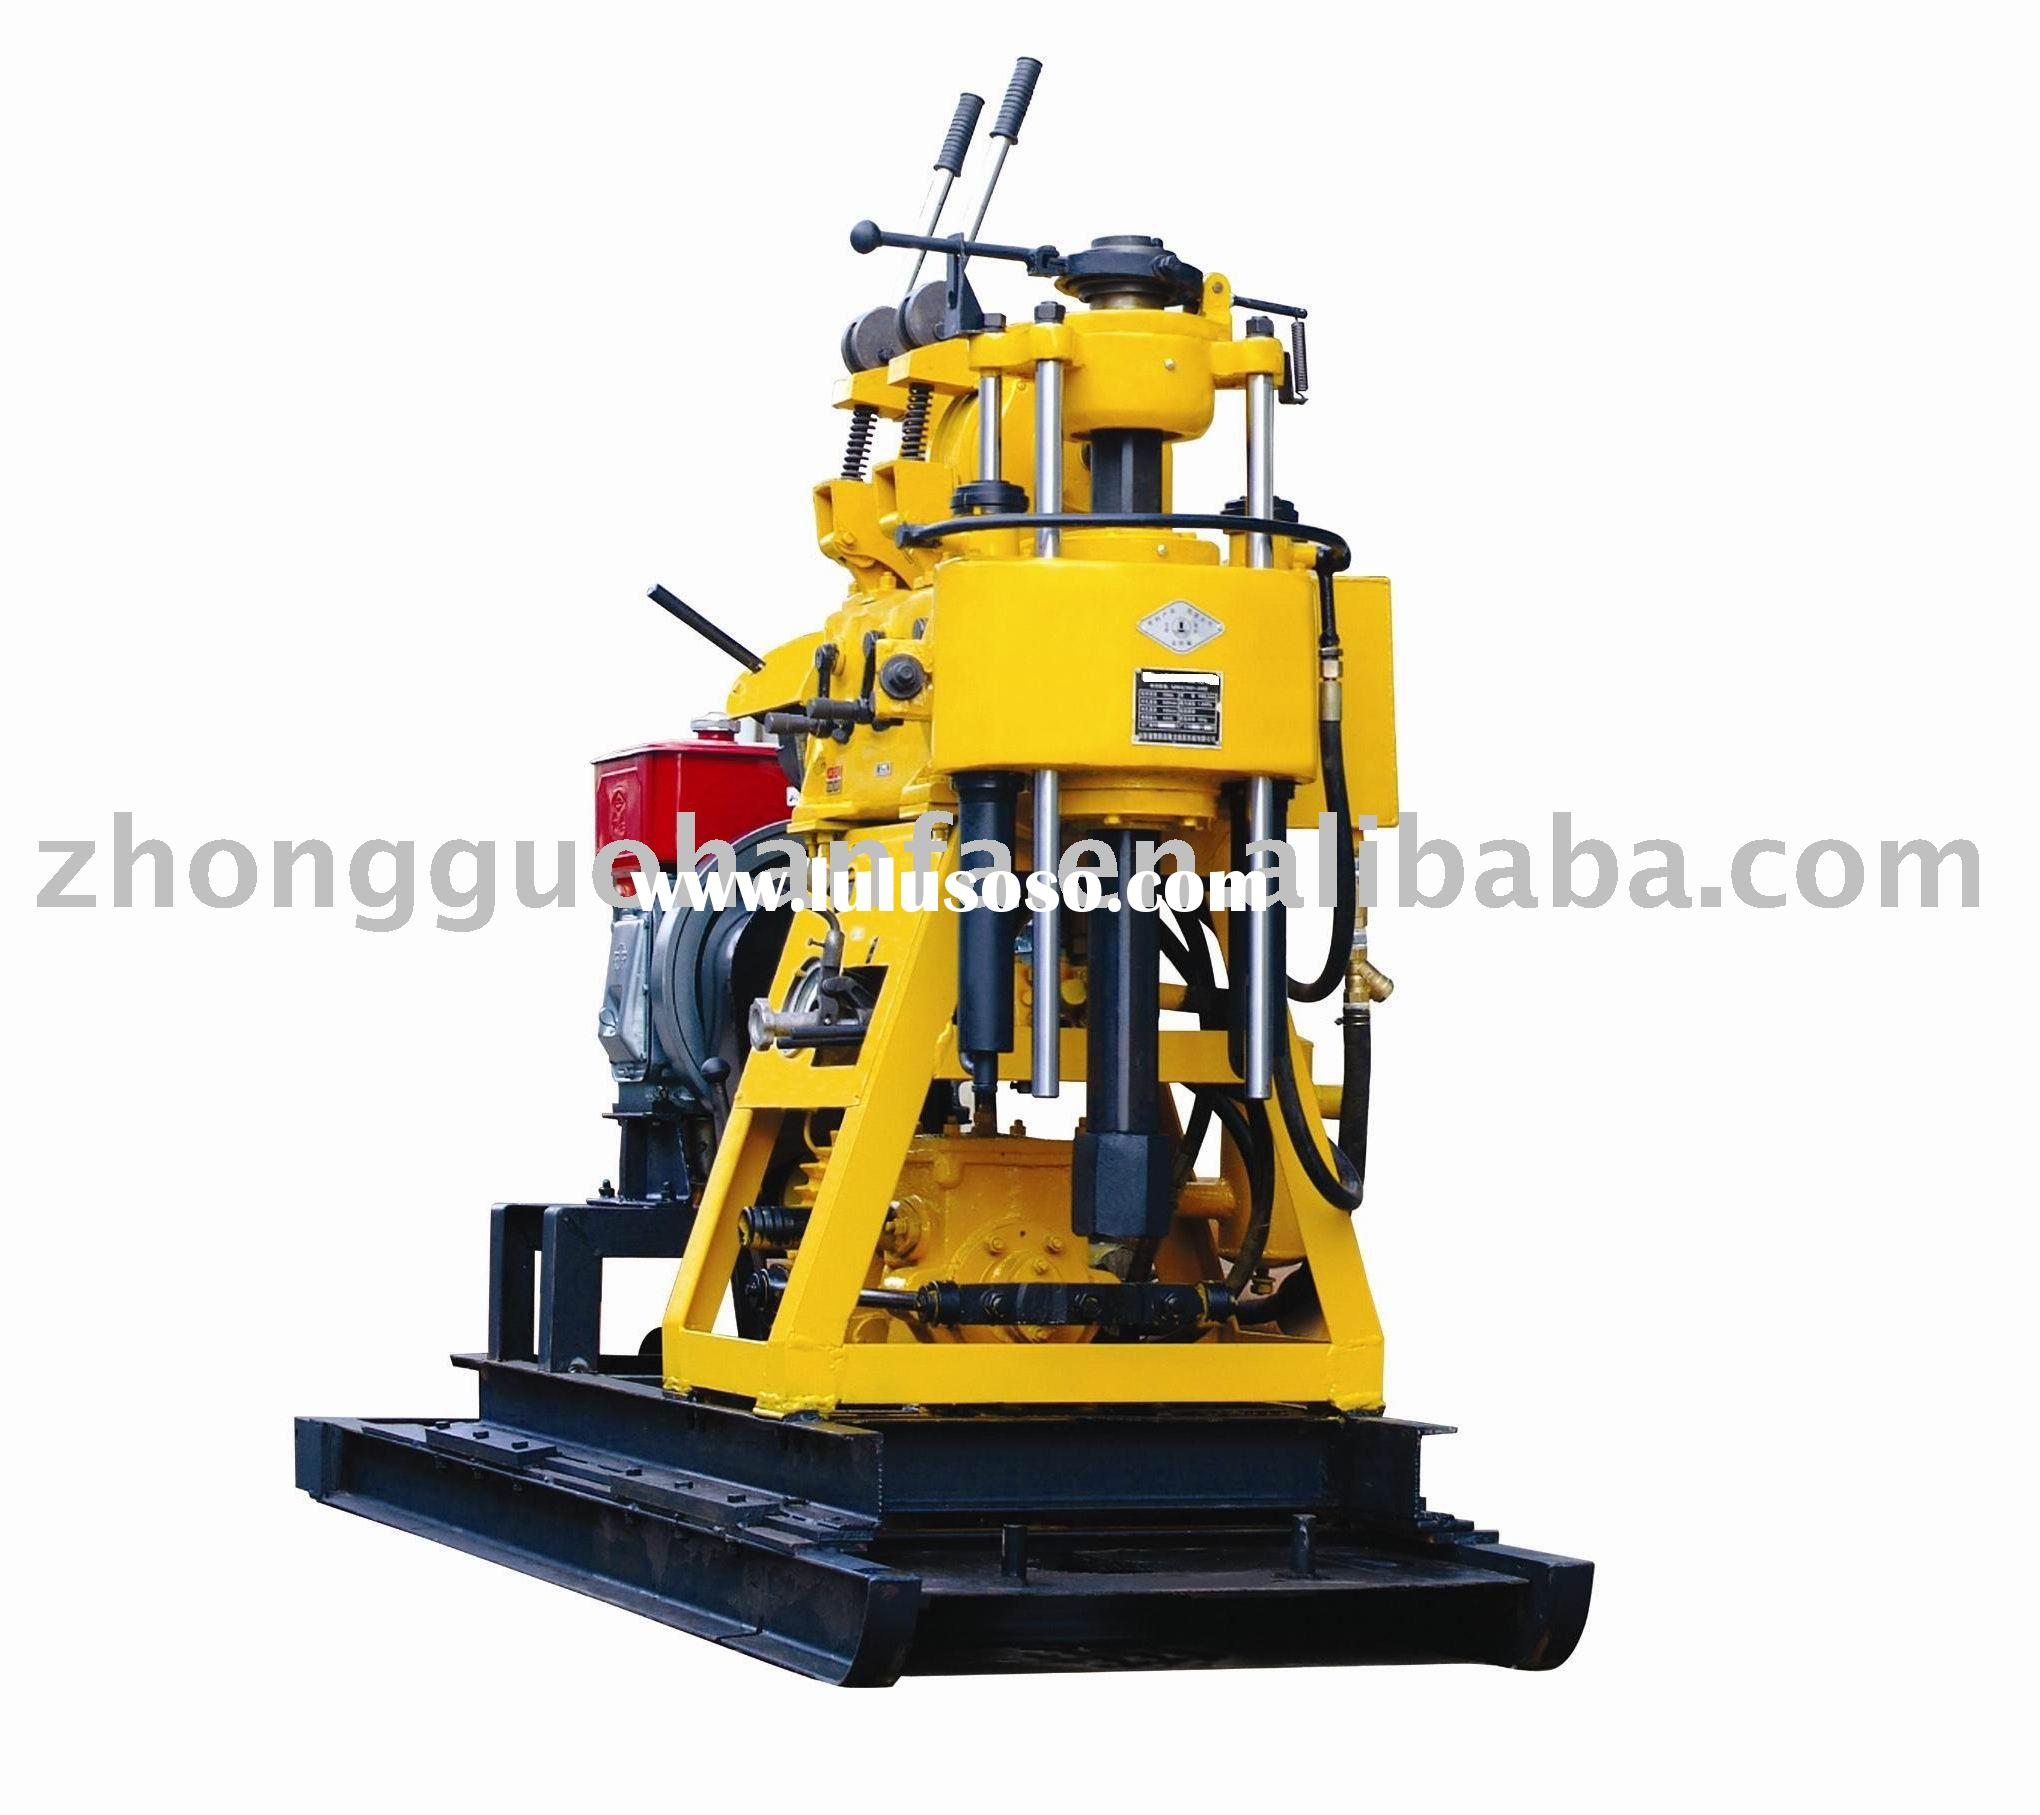 HF150 small type water well drilling equipment